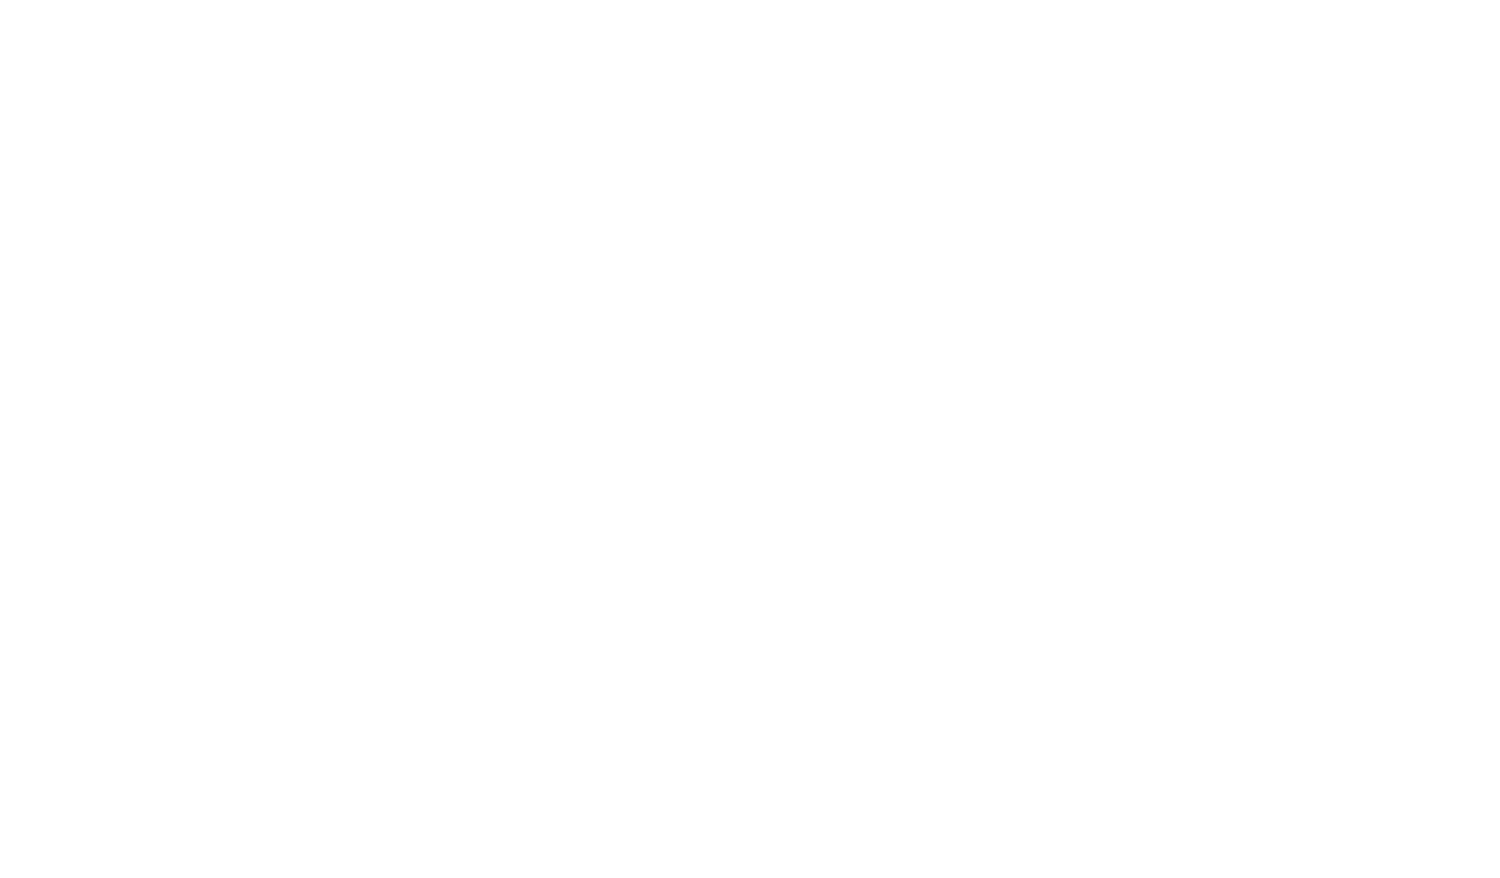 Boulevard Animal Hospital - Veterinarian in Athens, GA